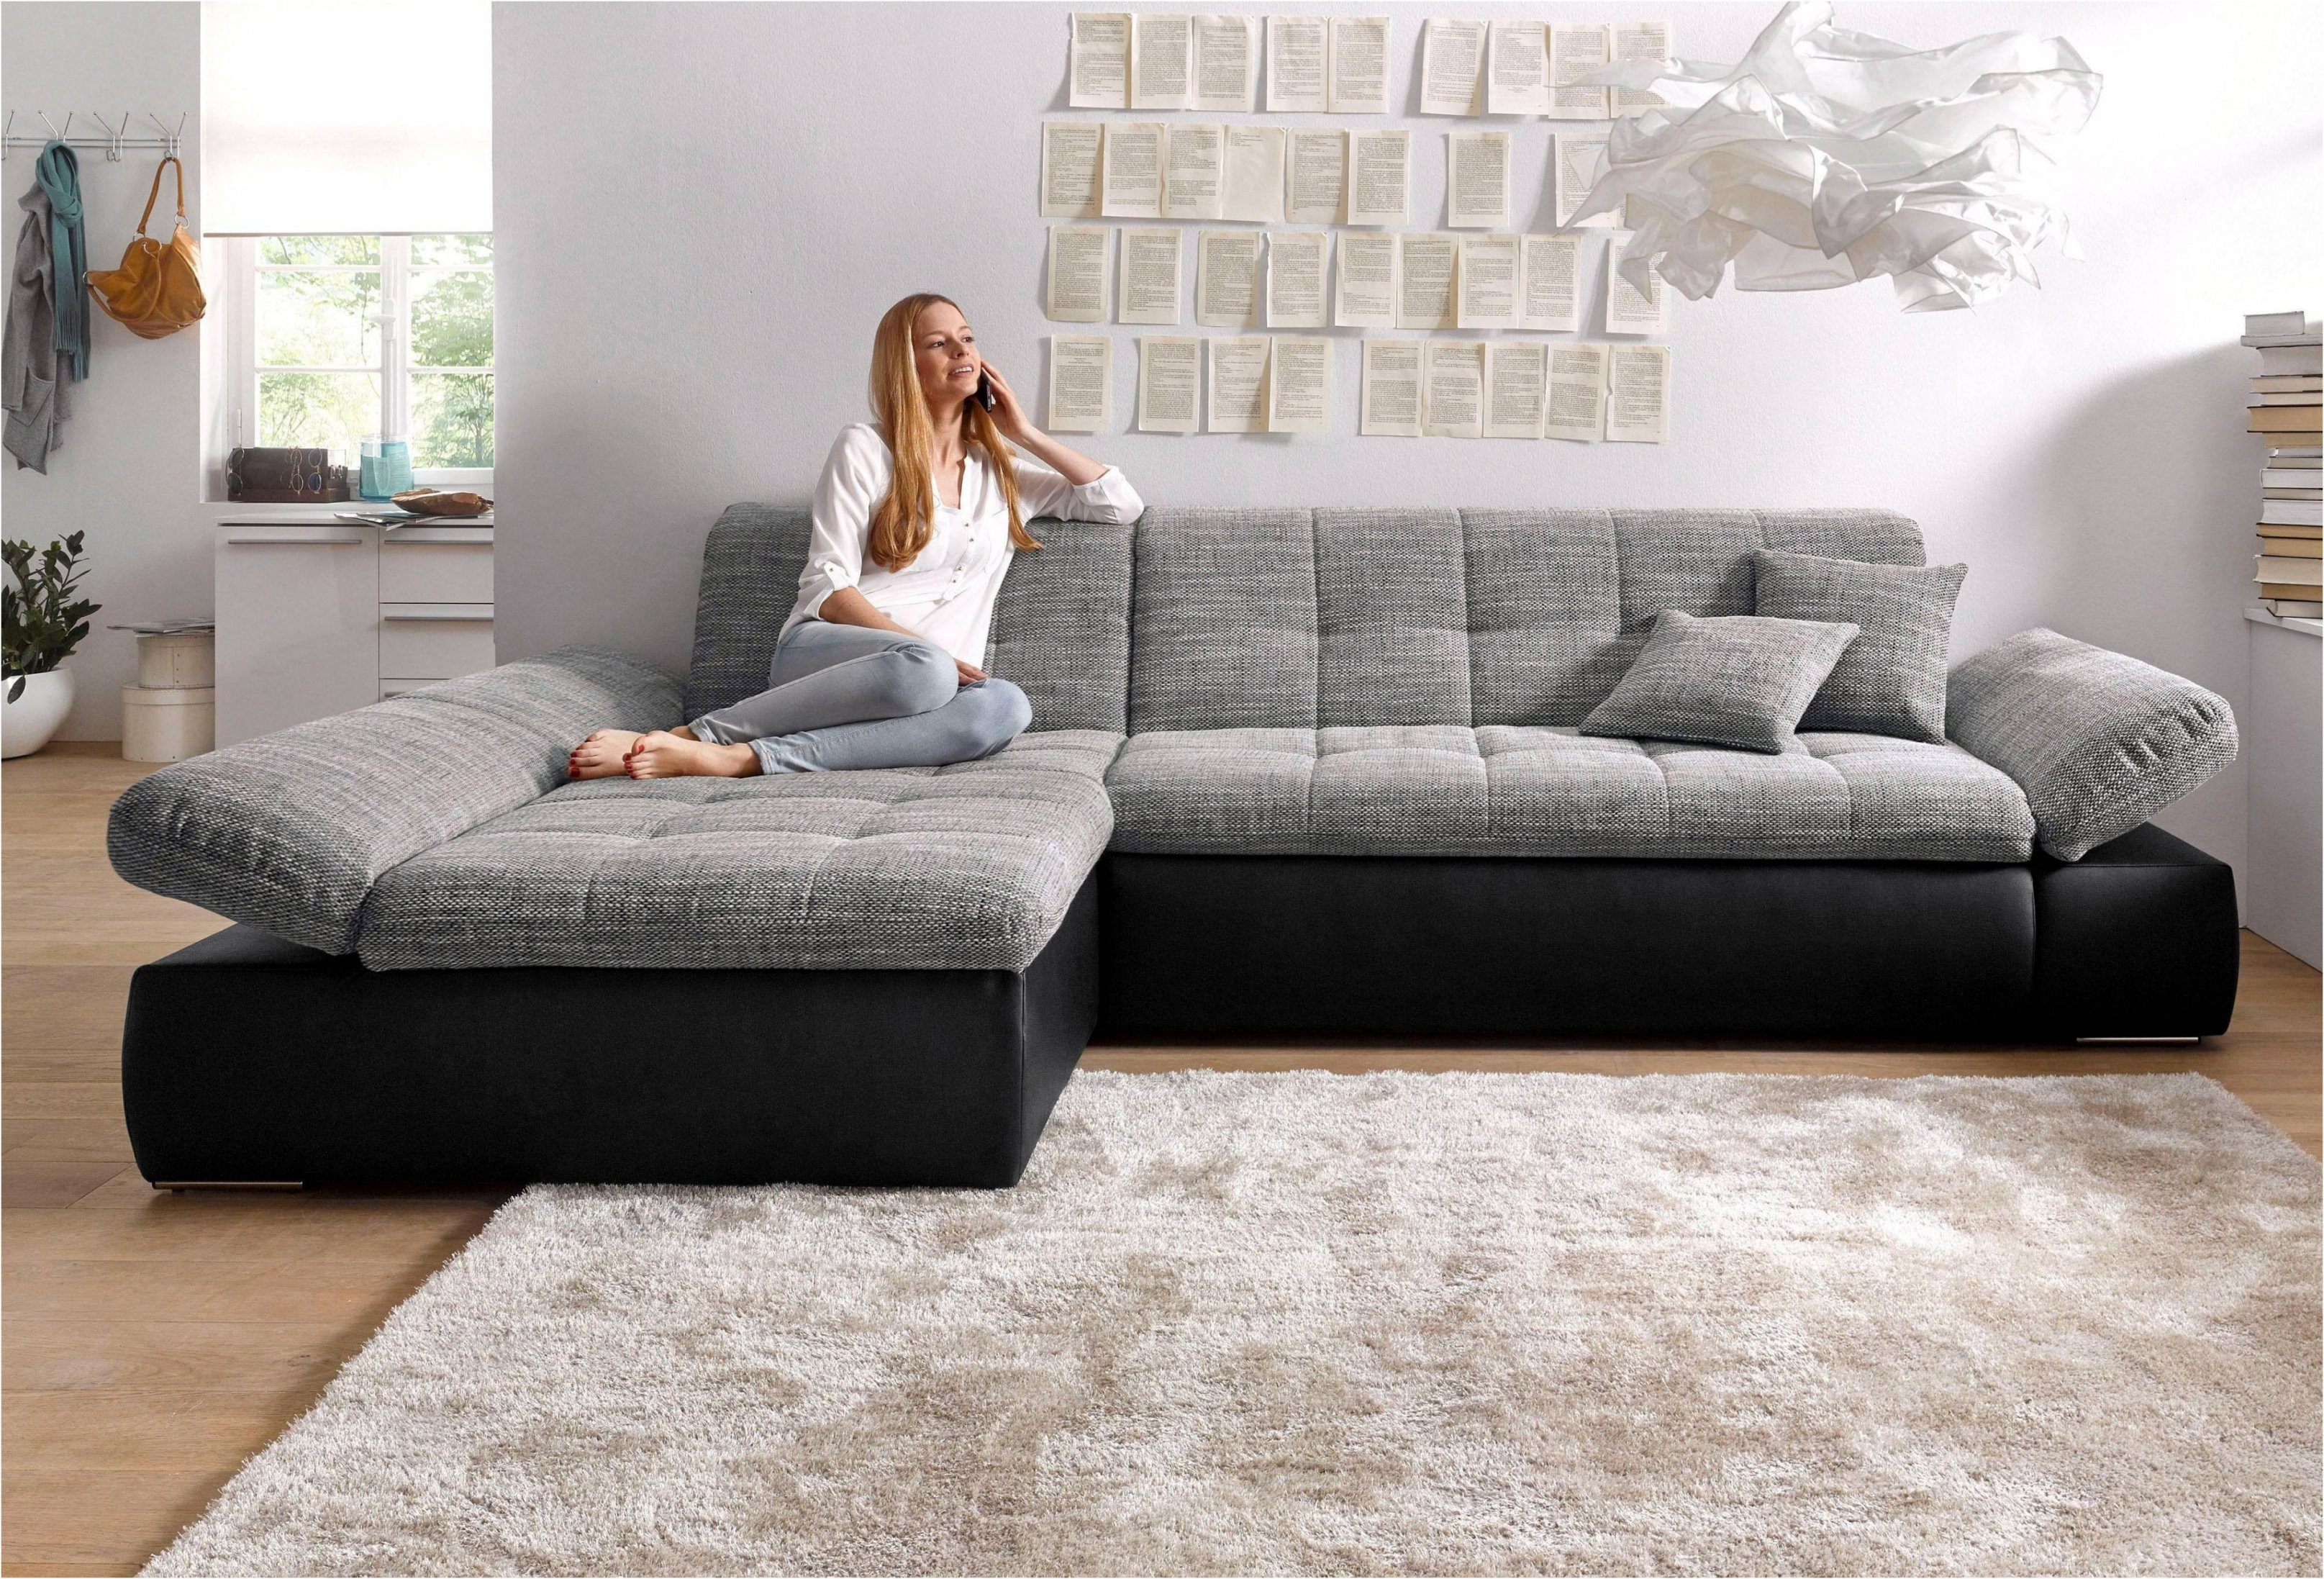 Big Sofa Landhausstil Elegant Xxl Couch Frisch Landhaus Couch Couch von Xxl Sofa Landhausstil Photo